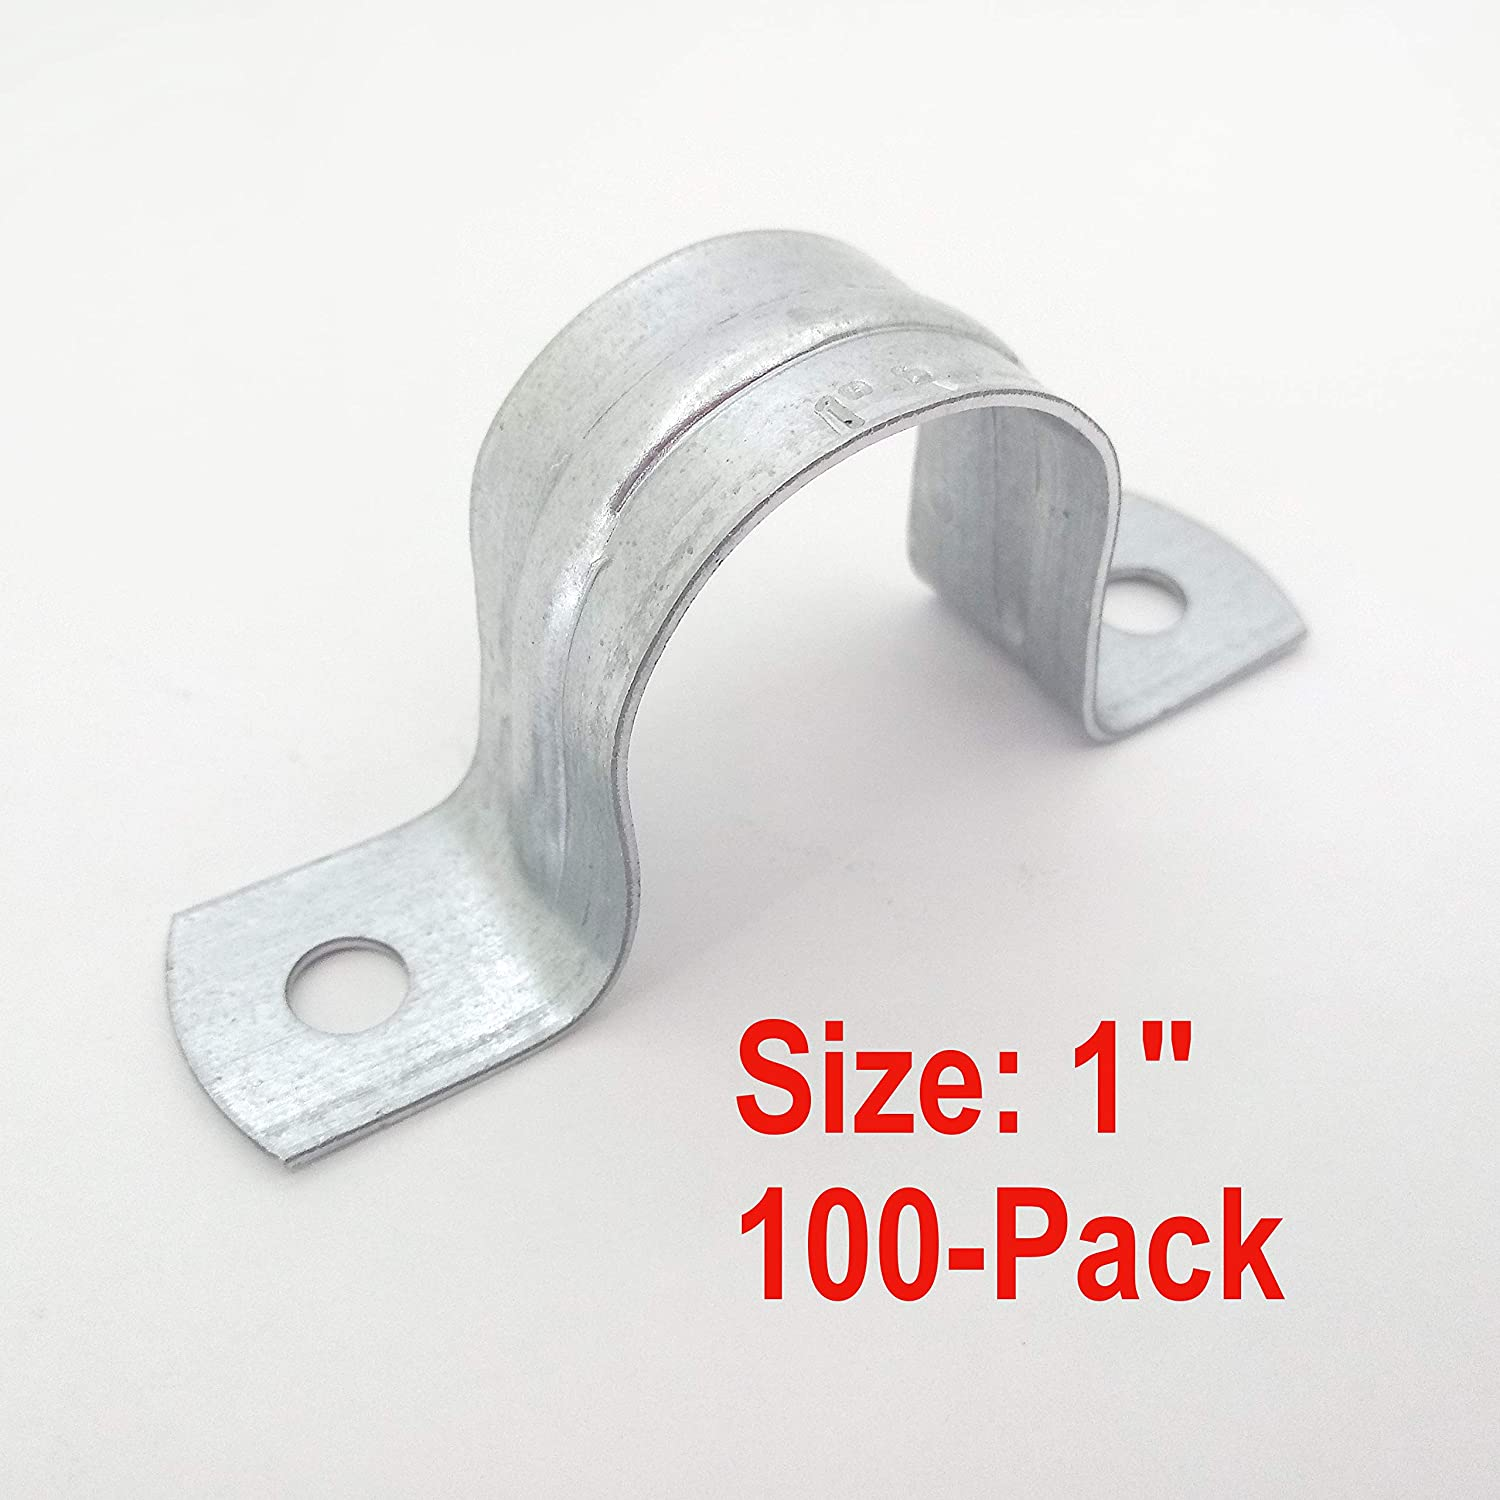 IMC Conduit Heavy Duty Rigid Pipe Strap Clamp Hanger 2 Holes Galvanized or PVC Pipes 10, 1//2 Inch